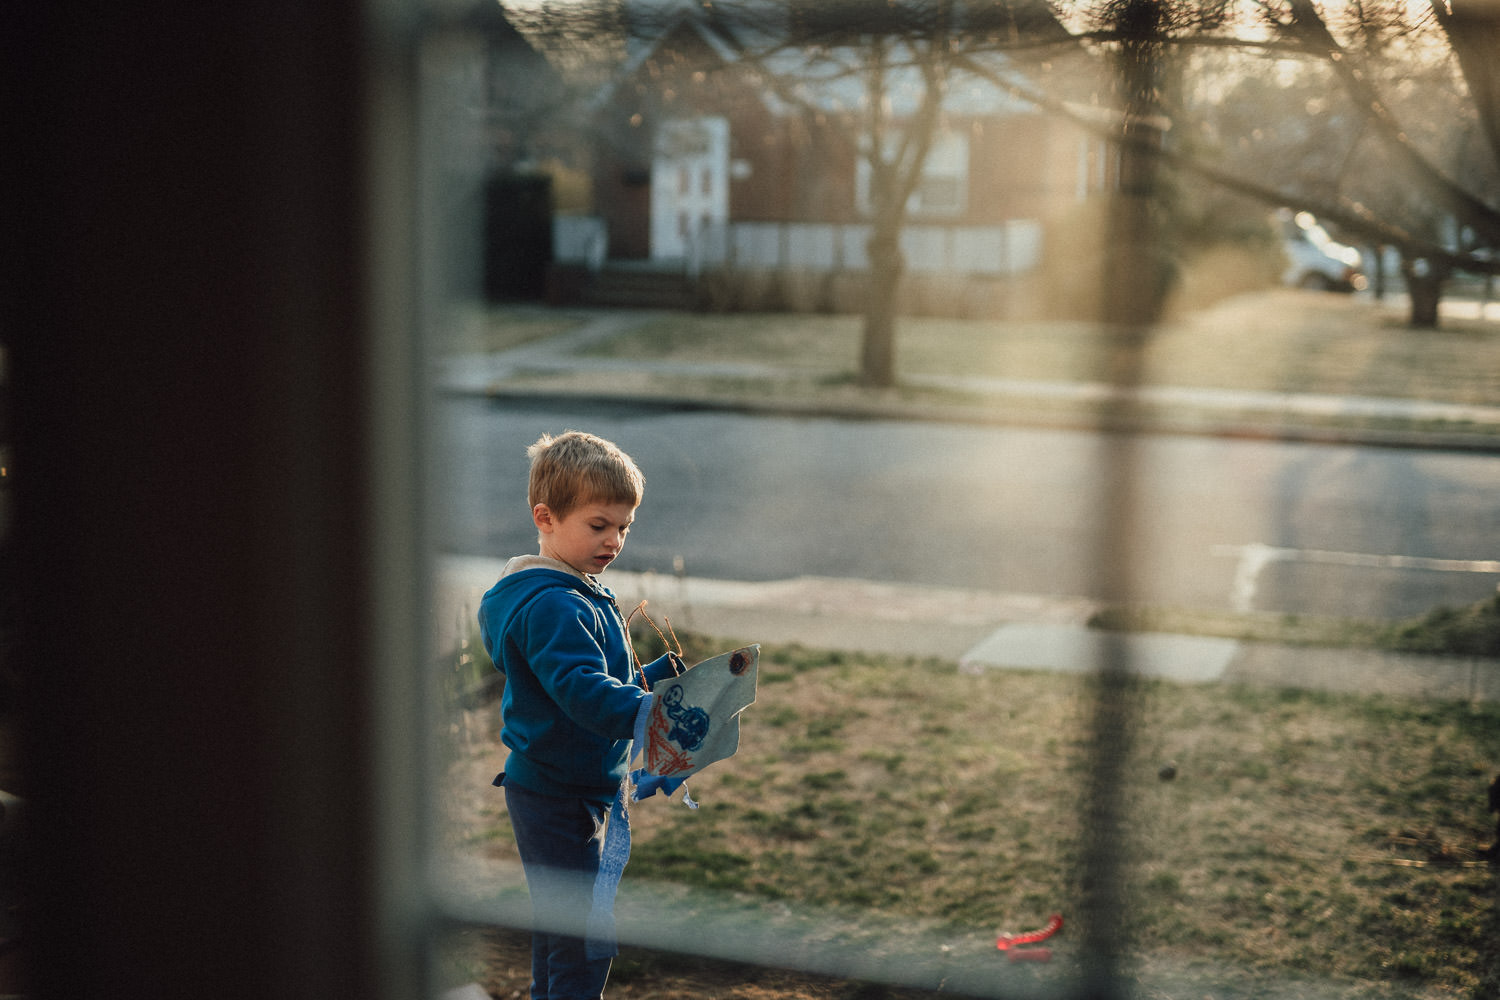 Looking through a window at a little boy outside.